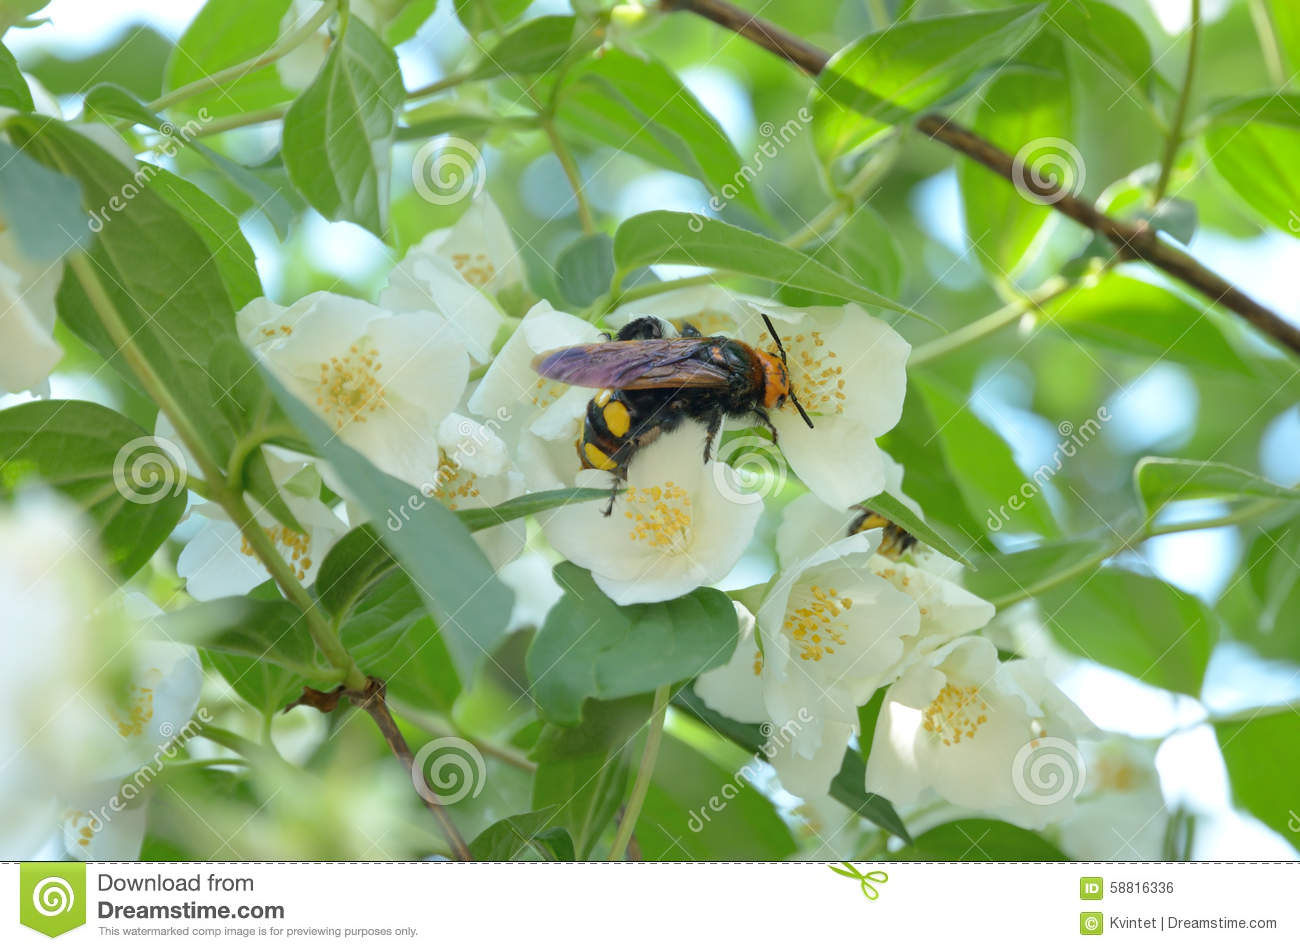 Hornet collects nectar from the flower of jasmine plants 2 stock download hornet collects nectar from the flower of jasmine plants 2 stock photo image izmirmasajfo